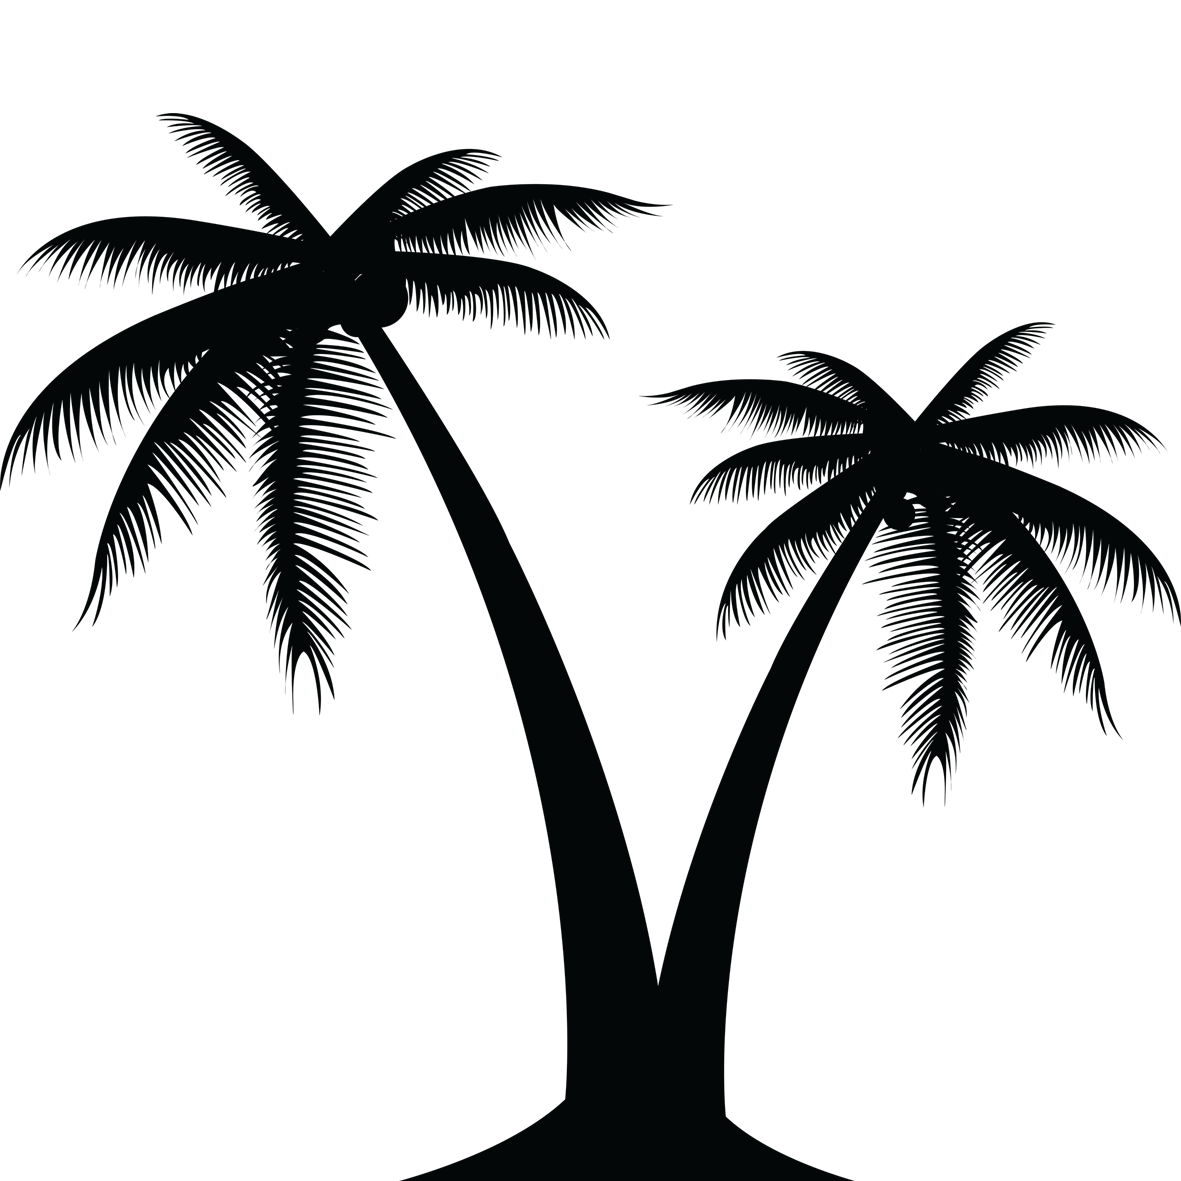 Tree Vector Art Free Download